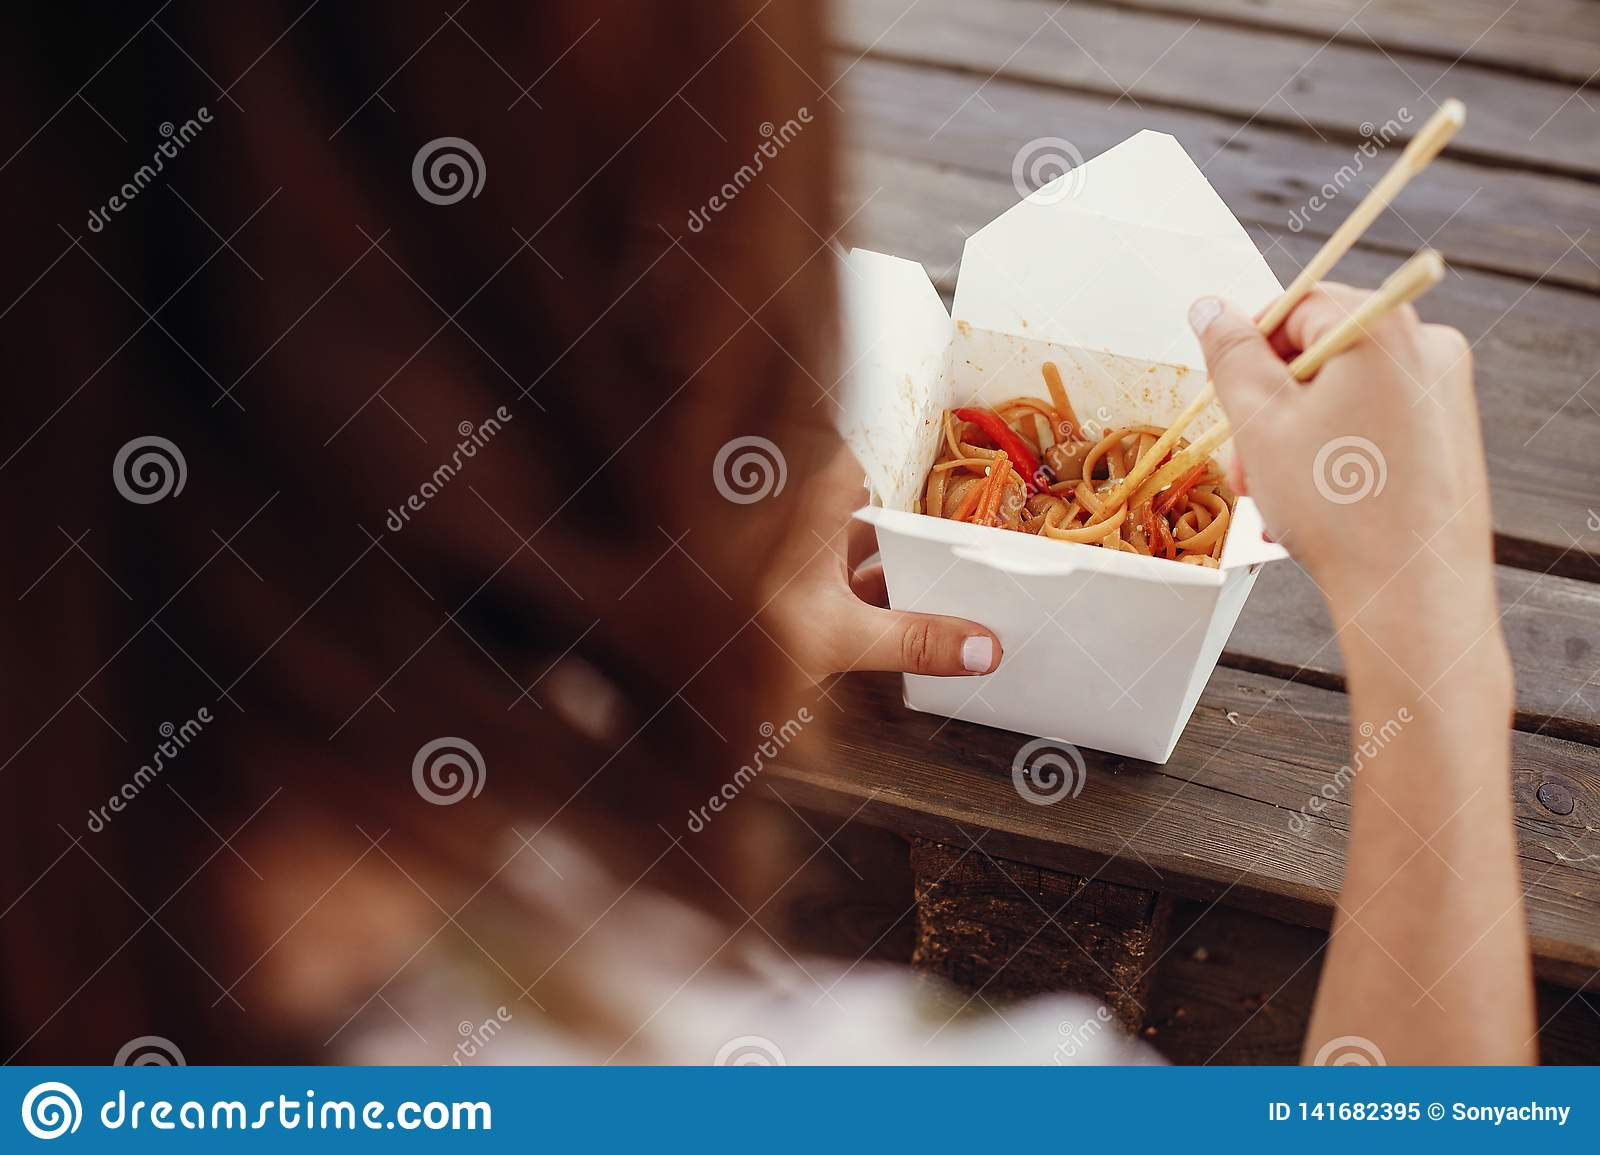 Wok with noodles and vegetables in carton box to go and bamboo chopsticks. Traditional Asian cuisine. Asian Street food festival.